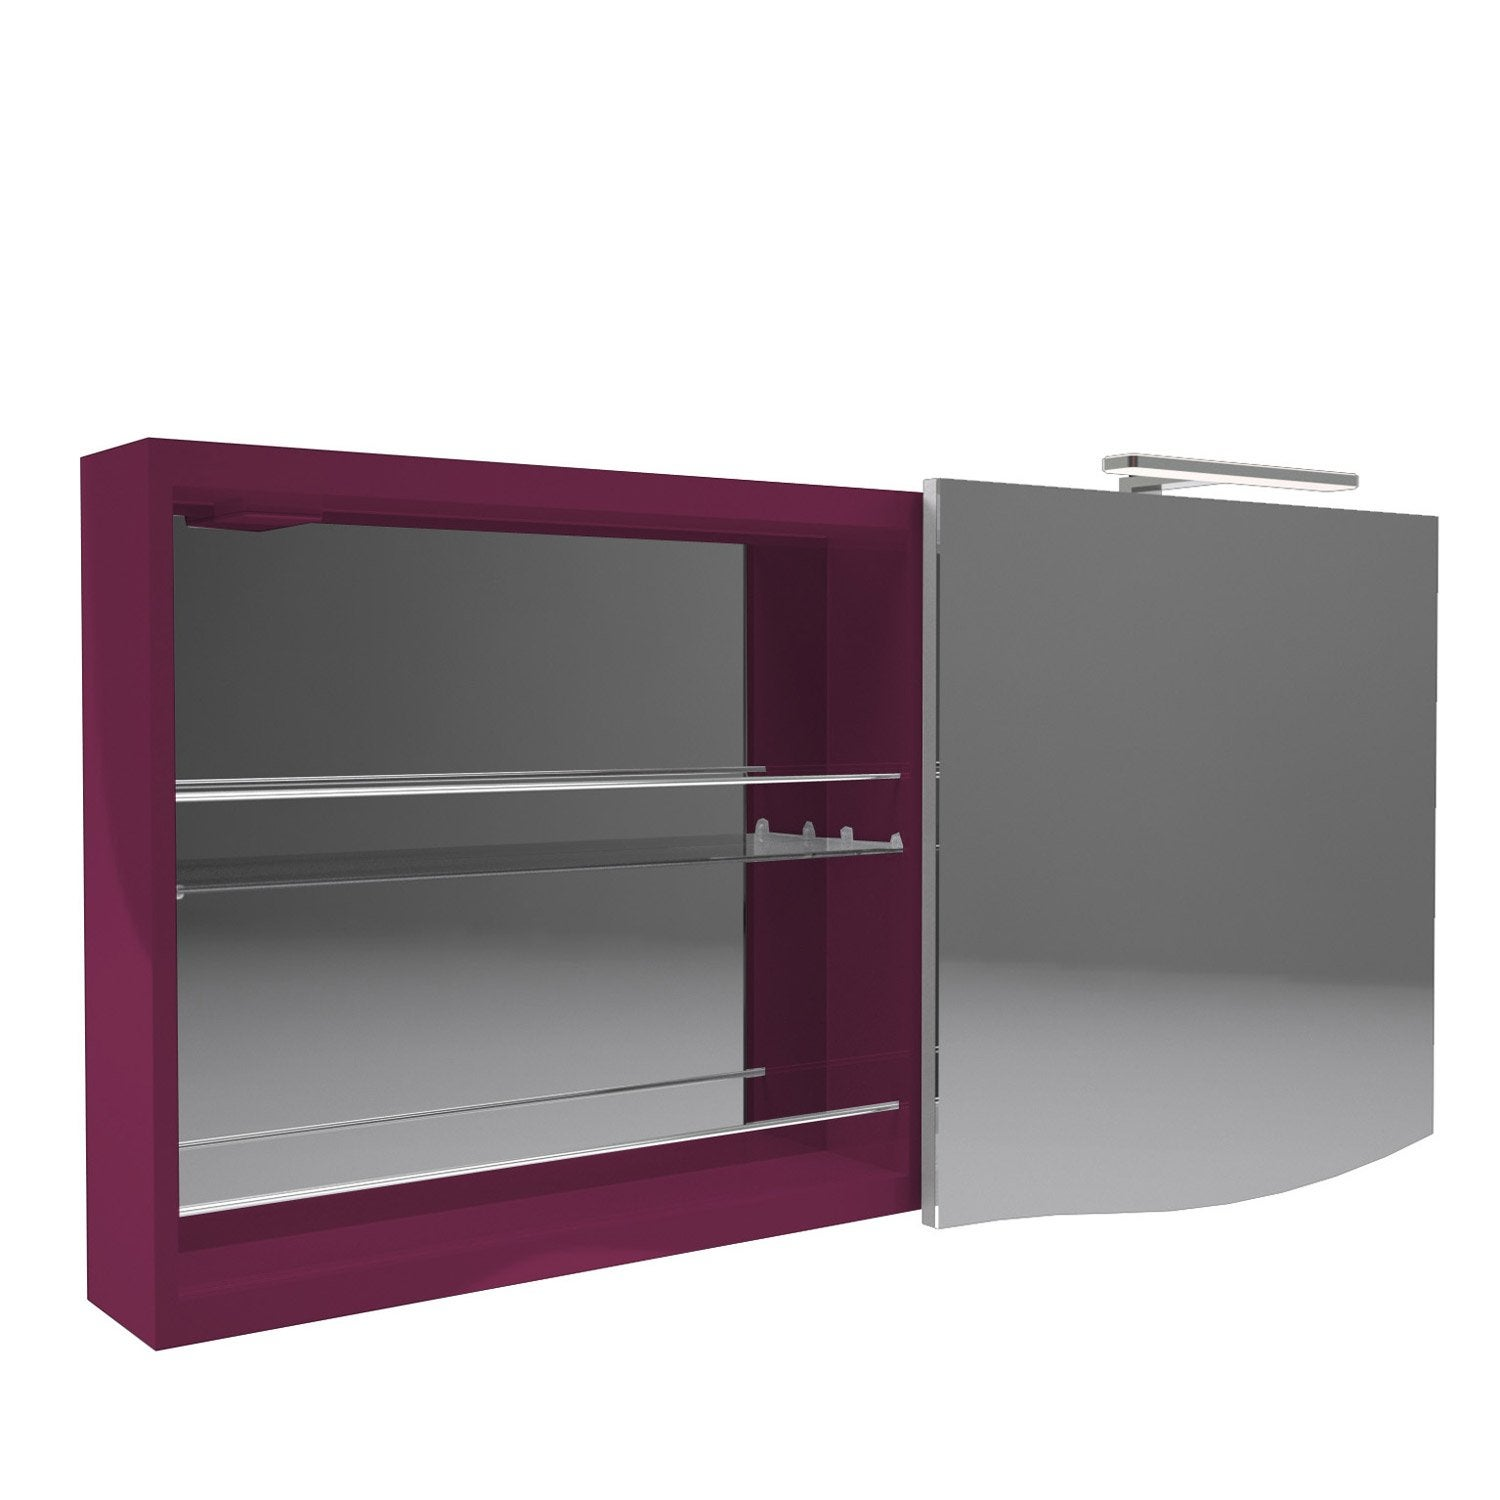 armoire de toilette lumineuse l 130 cm aubergine. Black Bedroom Furniture Sets. Home Design Ideas